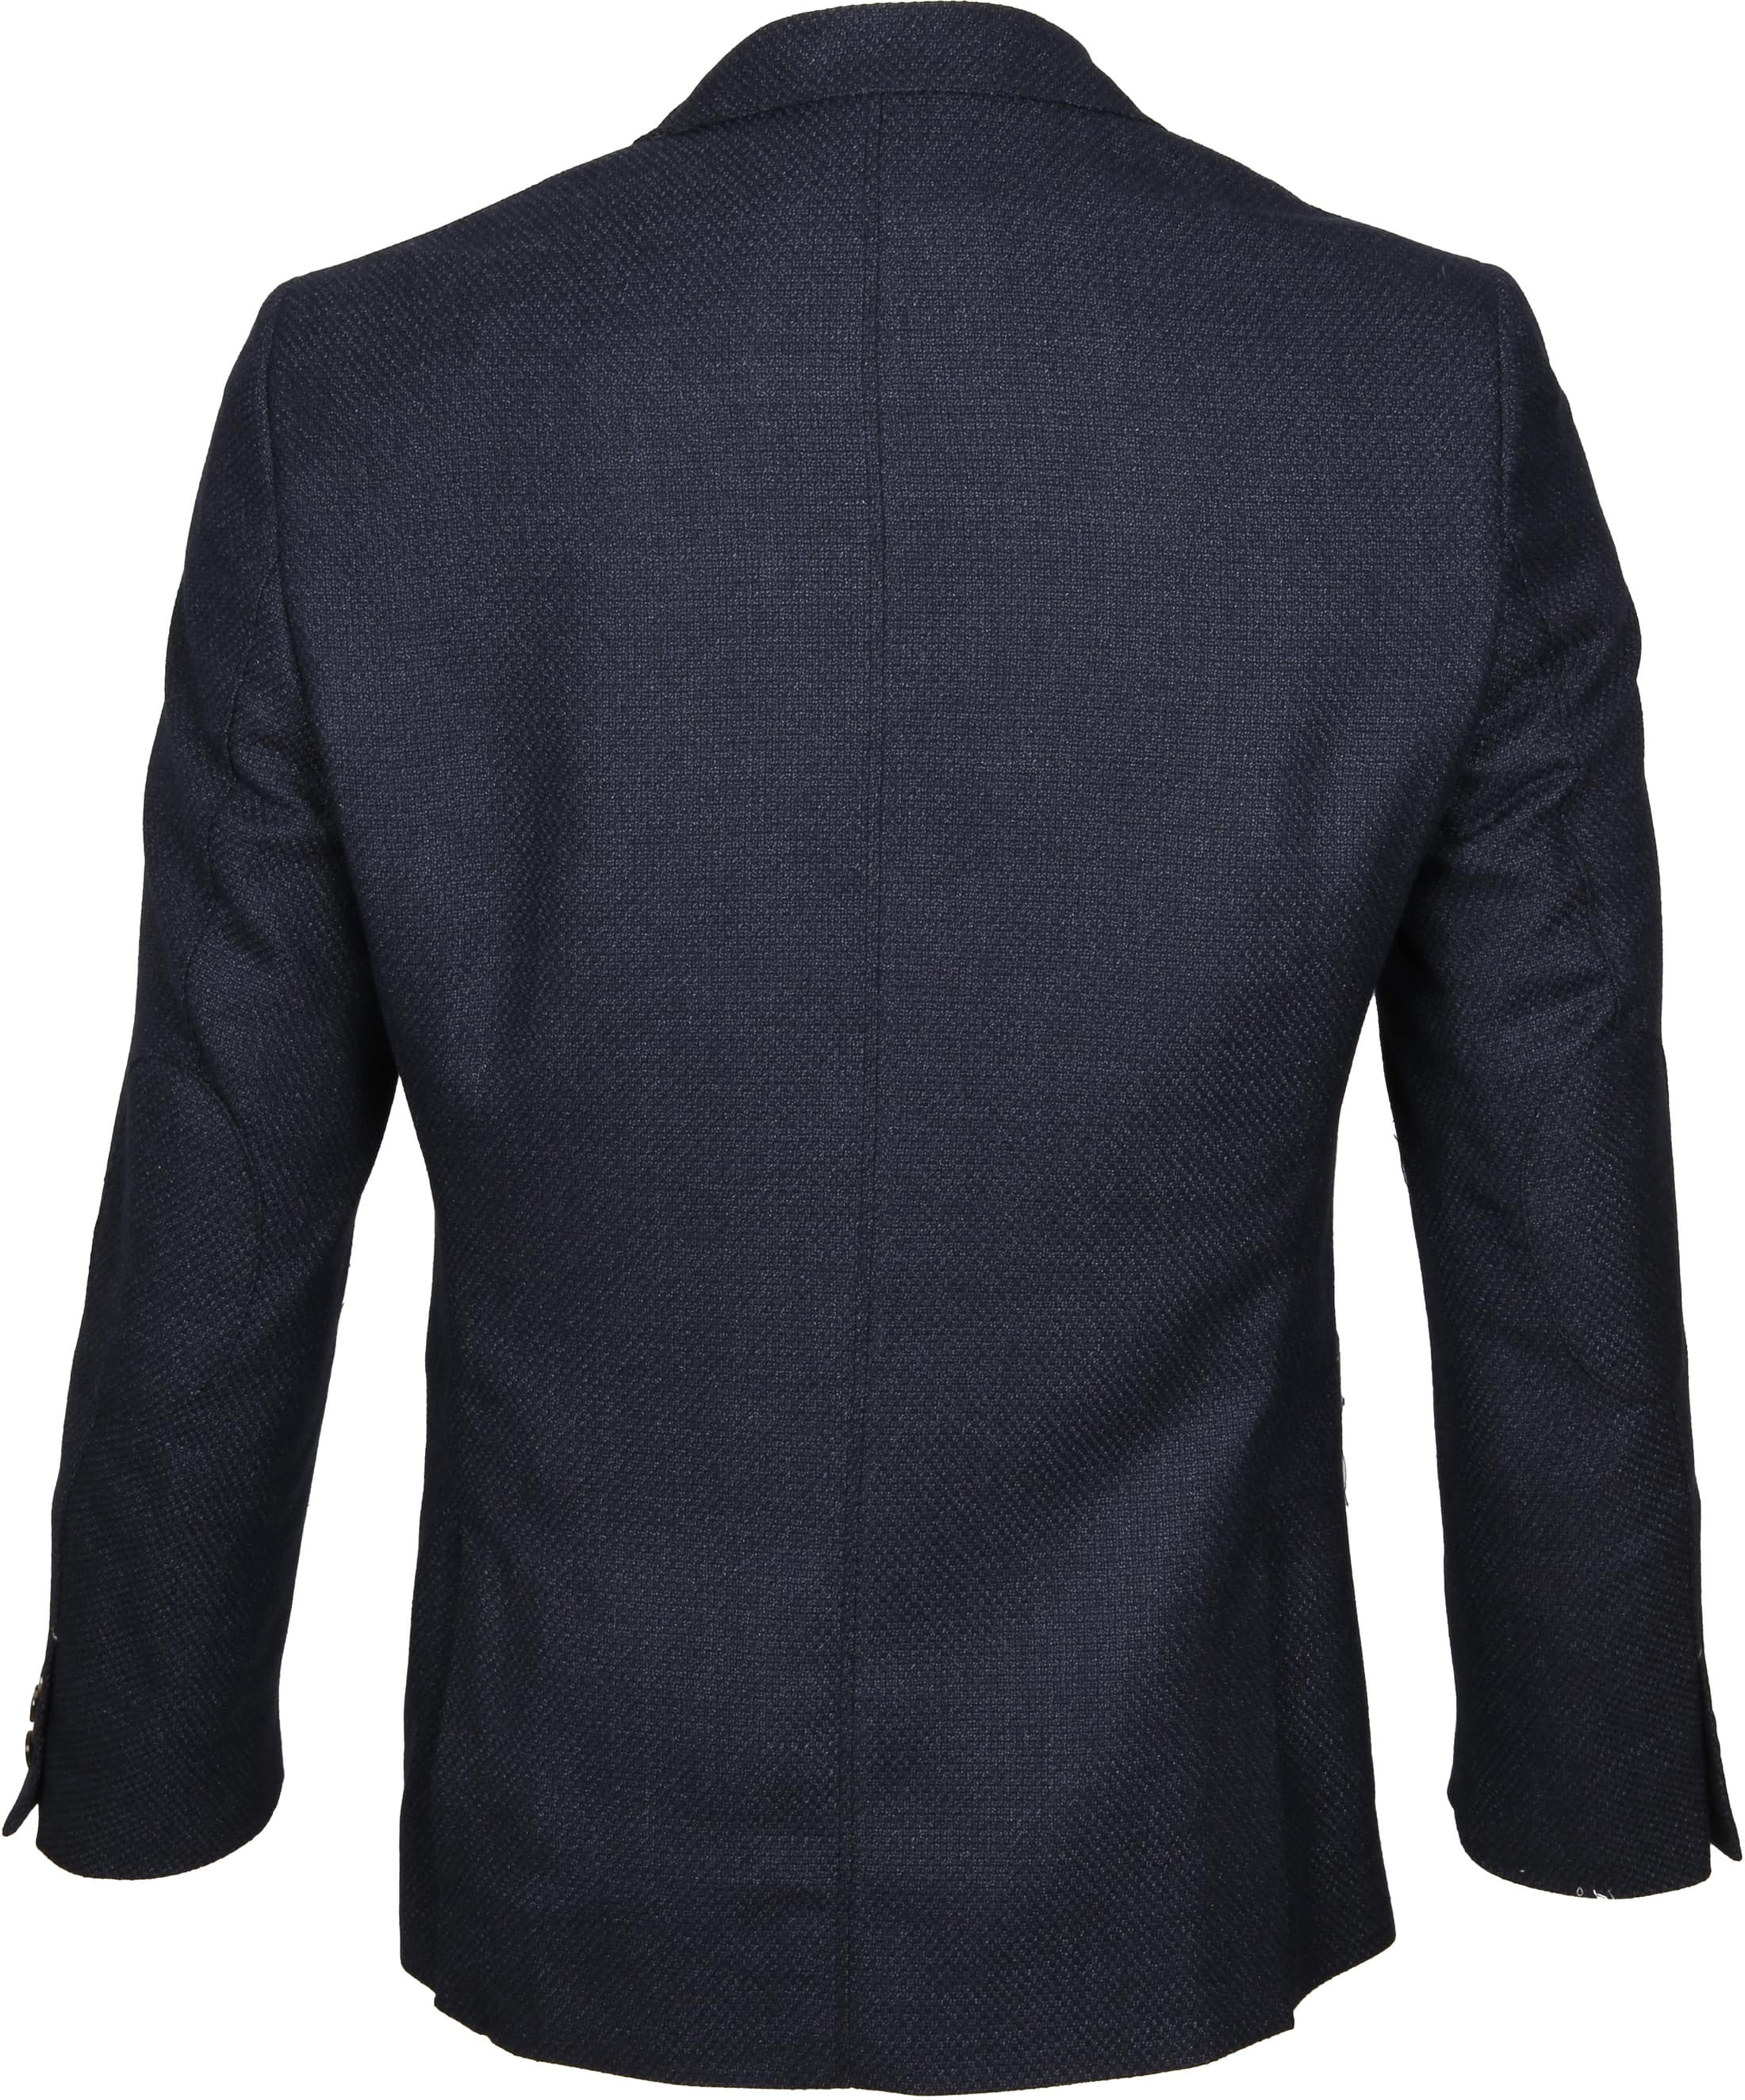 Suitable Blazer Art Navy foto 3